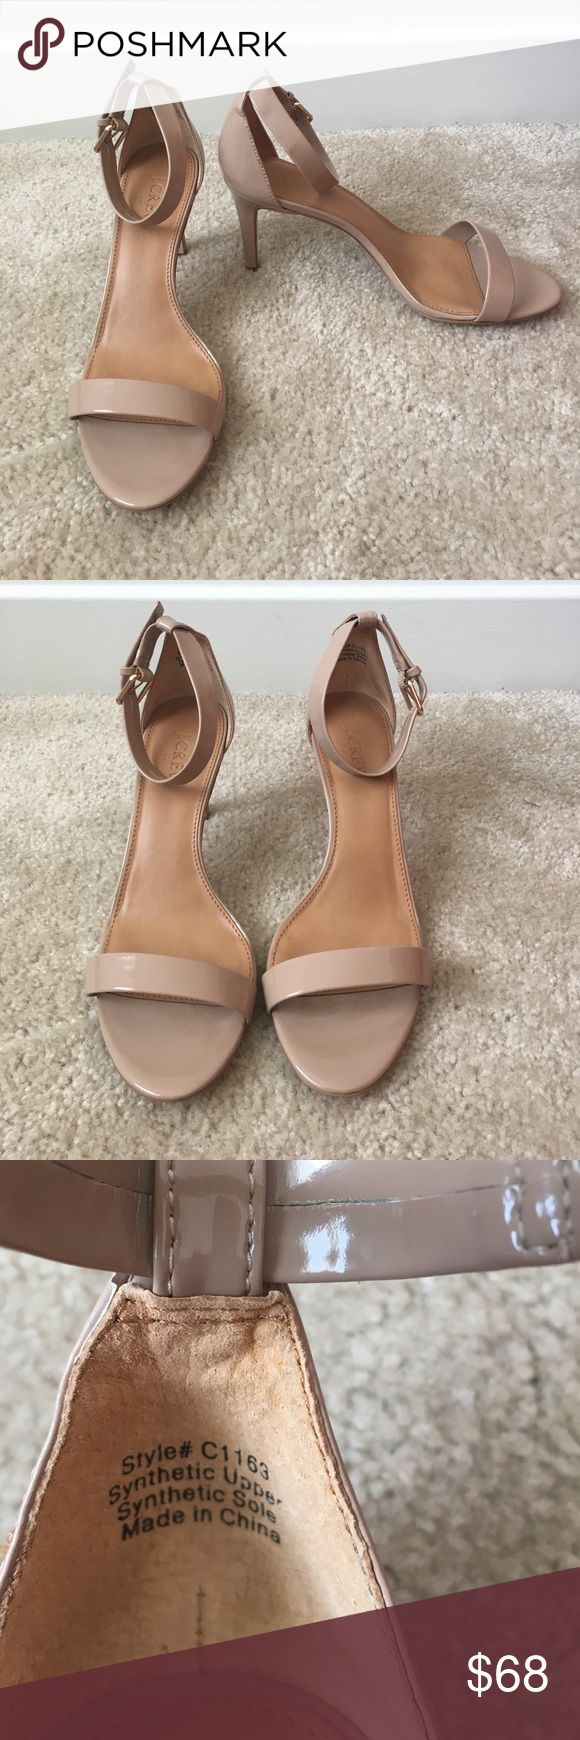 J CREW PATENT HIGH HEEL SANDAL J crew factory patent high heel sandal are the perfect nude colored heels! Almost perfect condition. Heel measures 3 inches J. Crew Shoes Heels